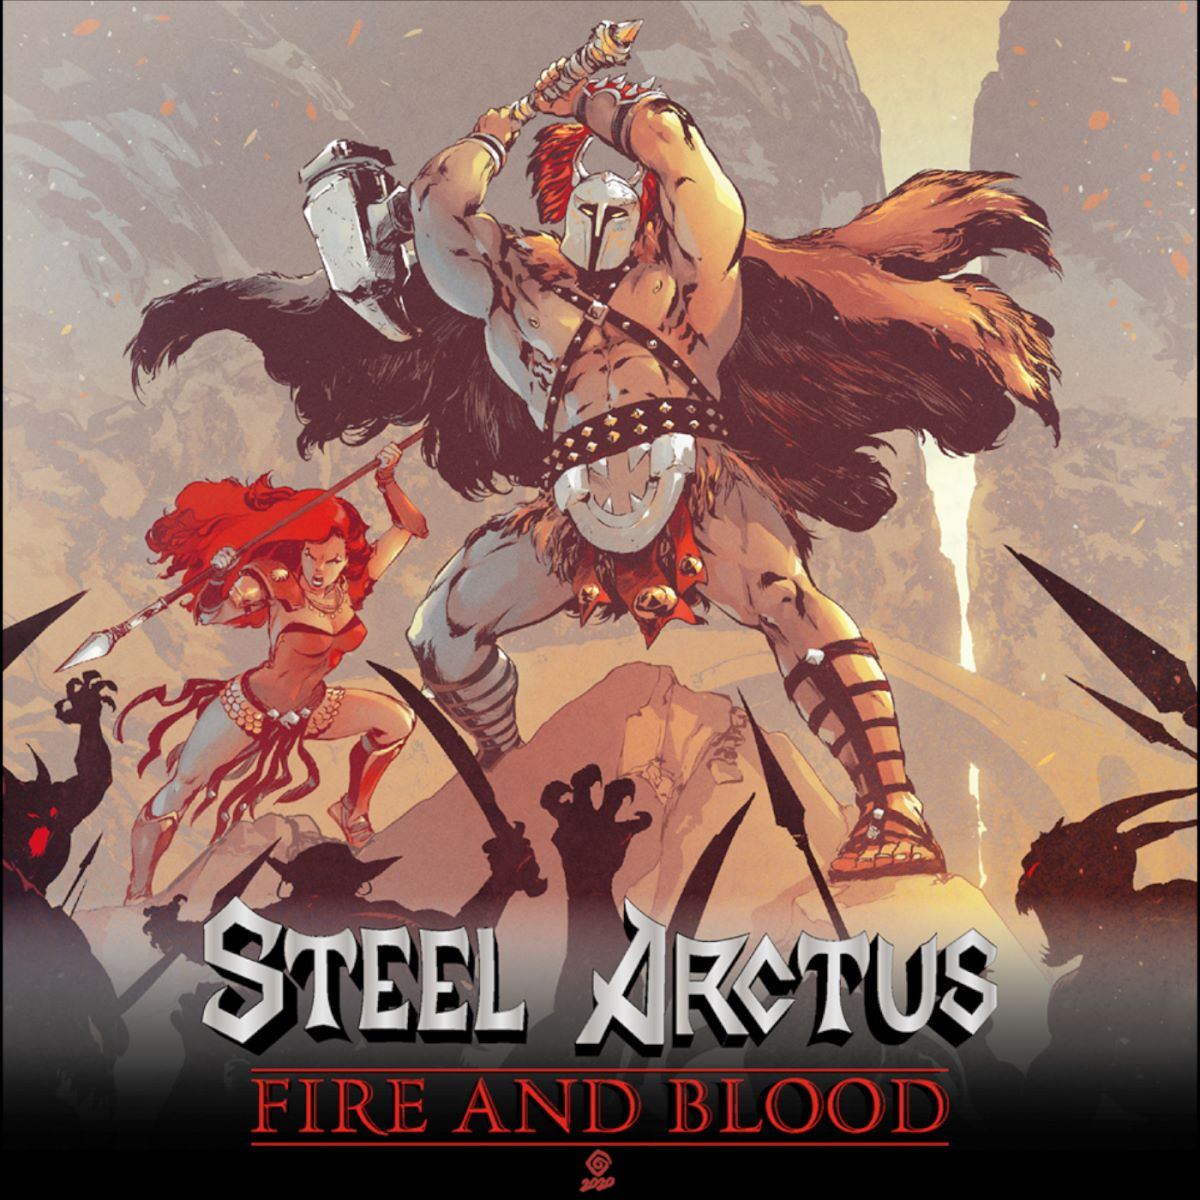 steel arctus - fire and blood - album cover